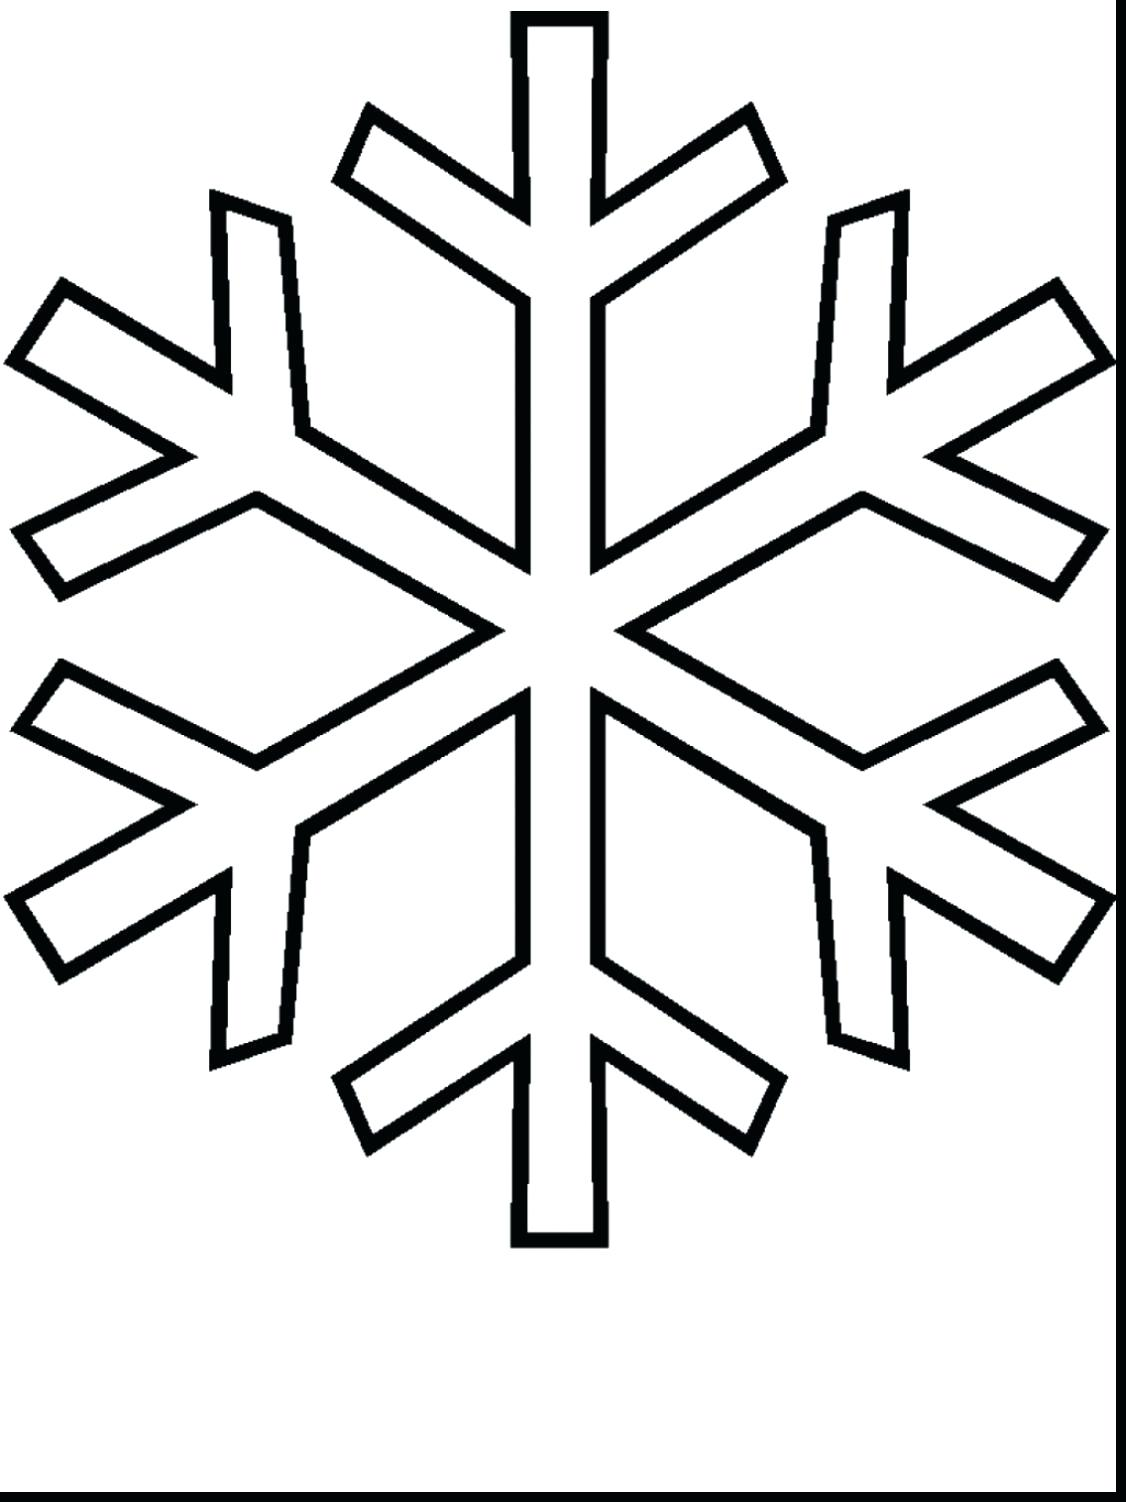 1126x1502 Coloring Snowflakes Coloring